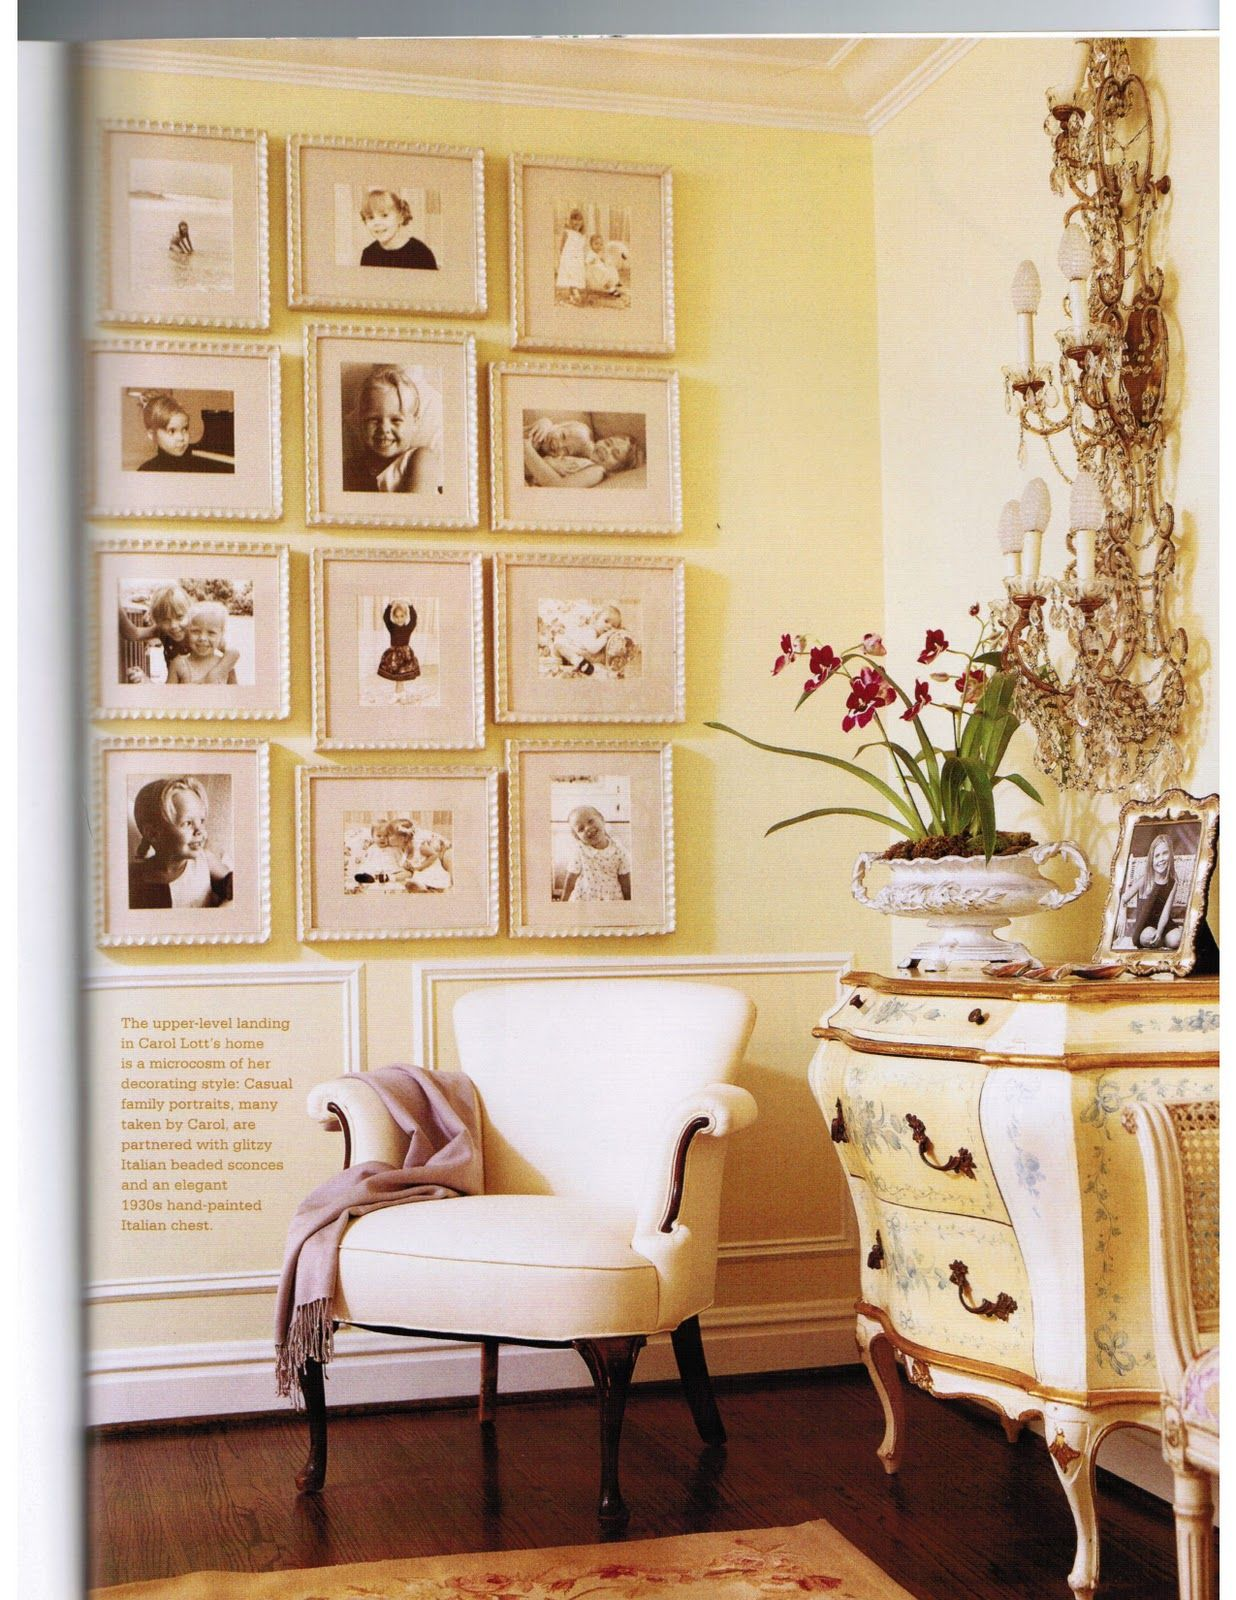 French Country: Enchanting Yellow & White | Country french magazine ...